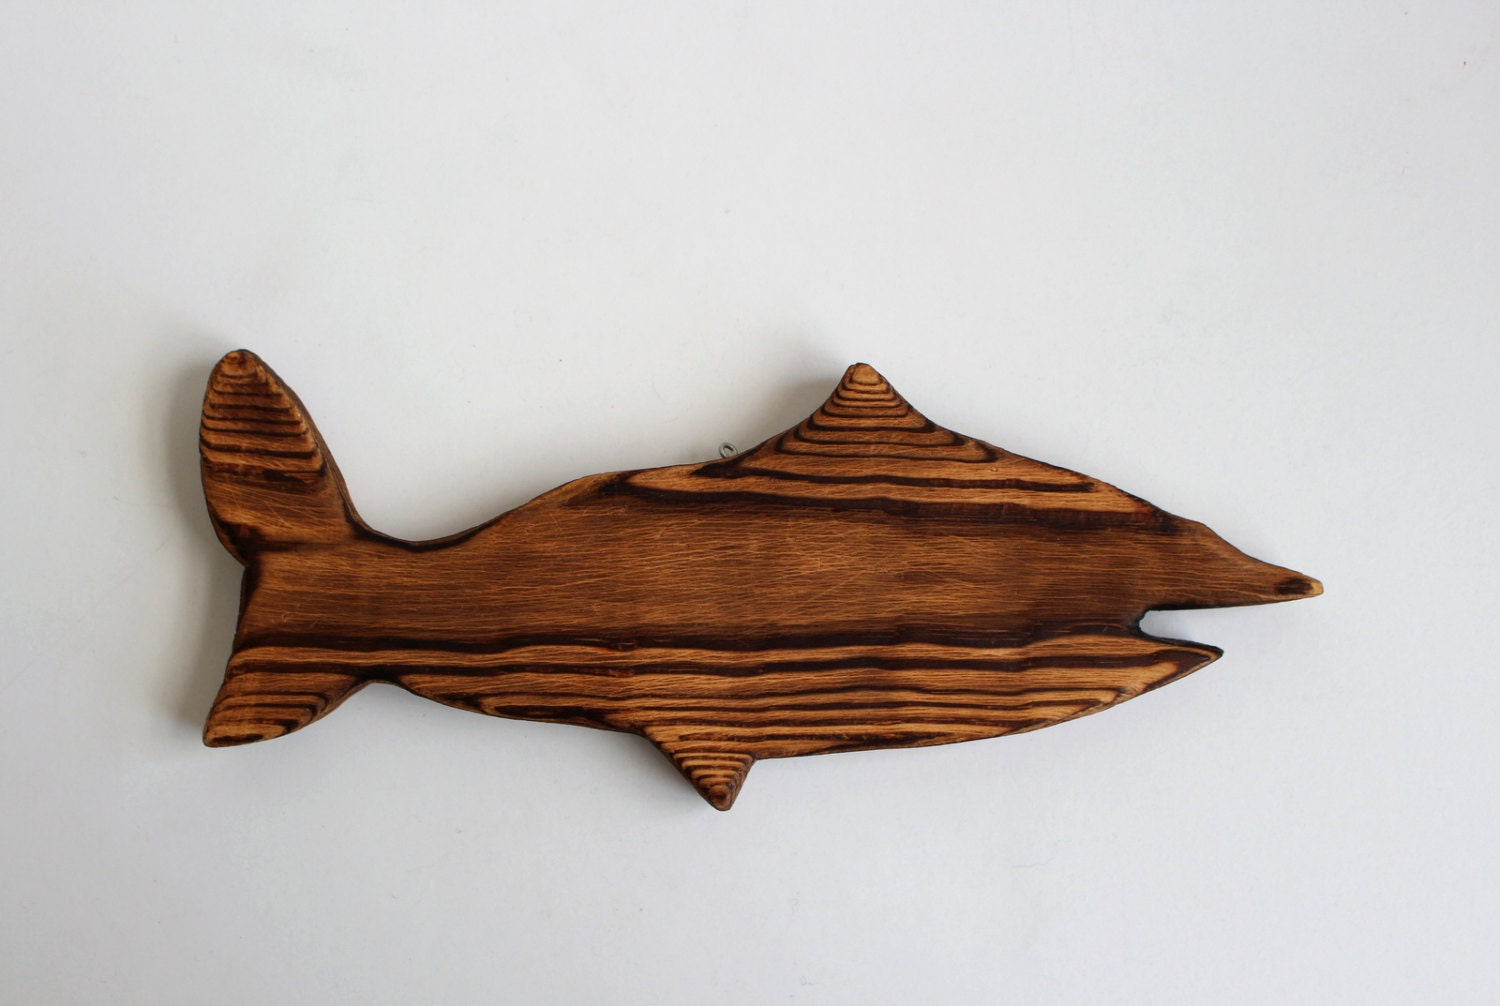 Vintage wood fish wall decor wooden figurine handmade wall for Fish wall decor